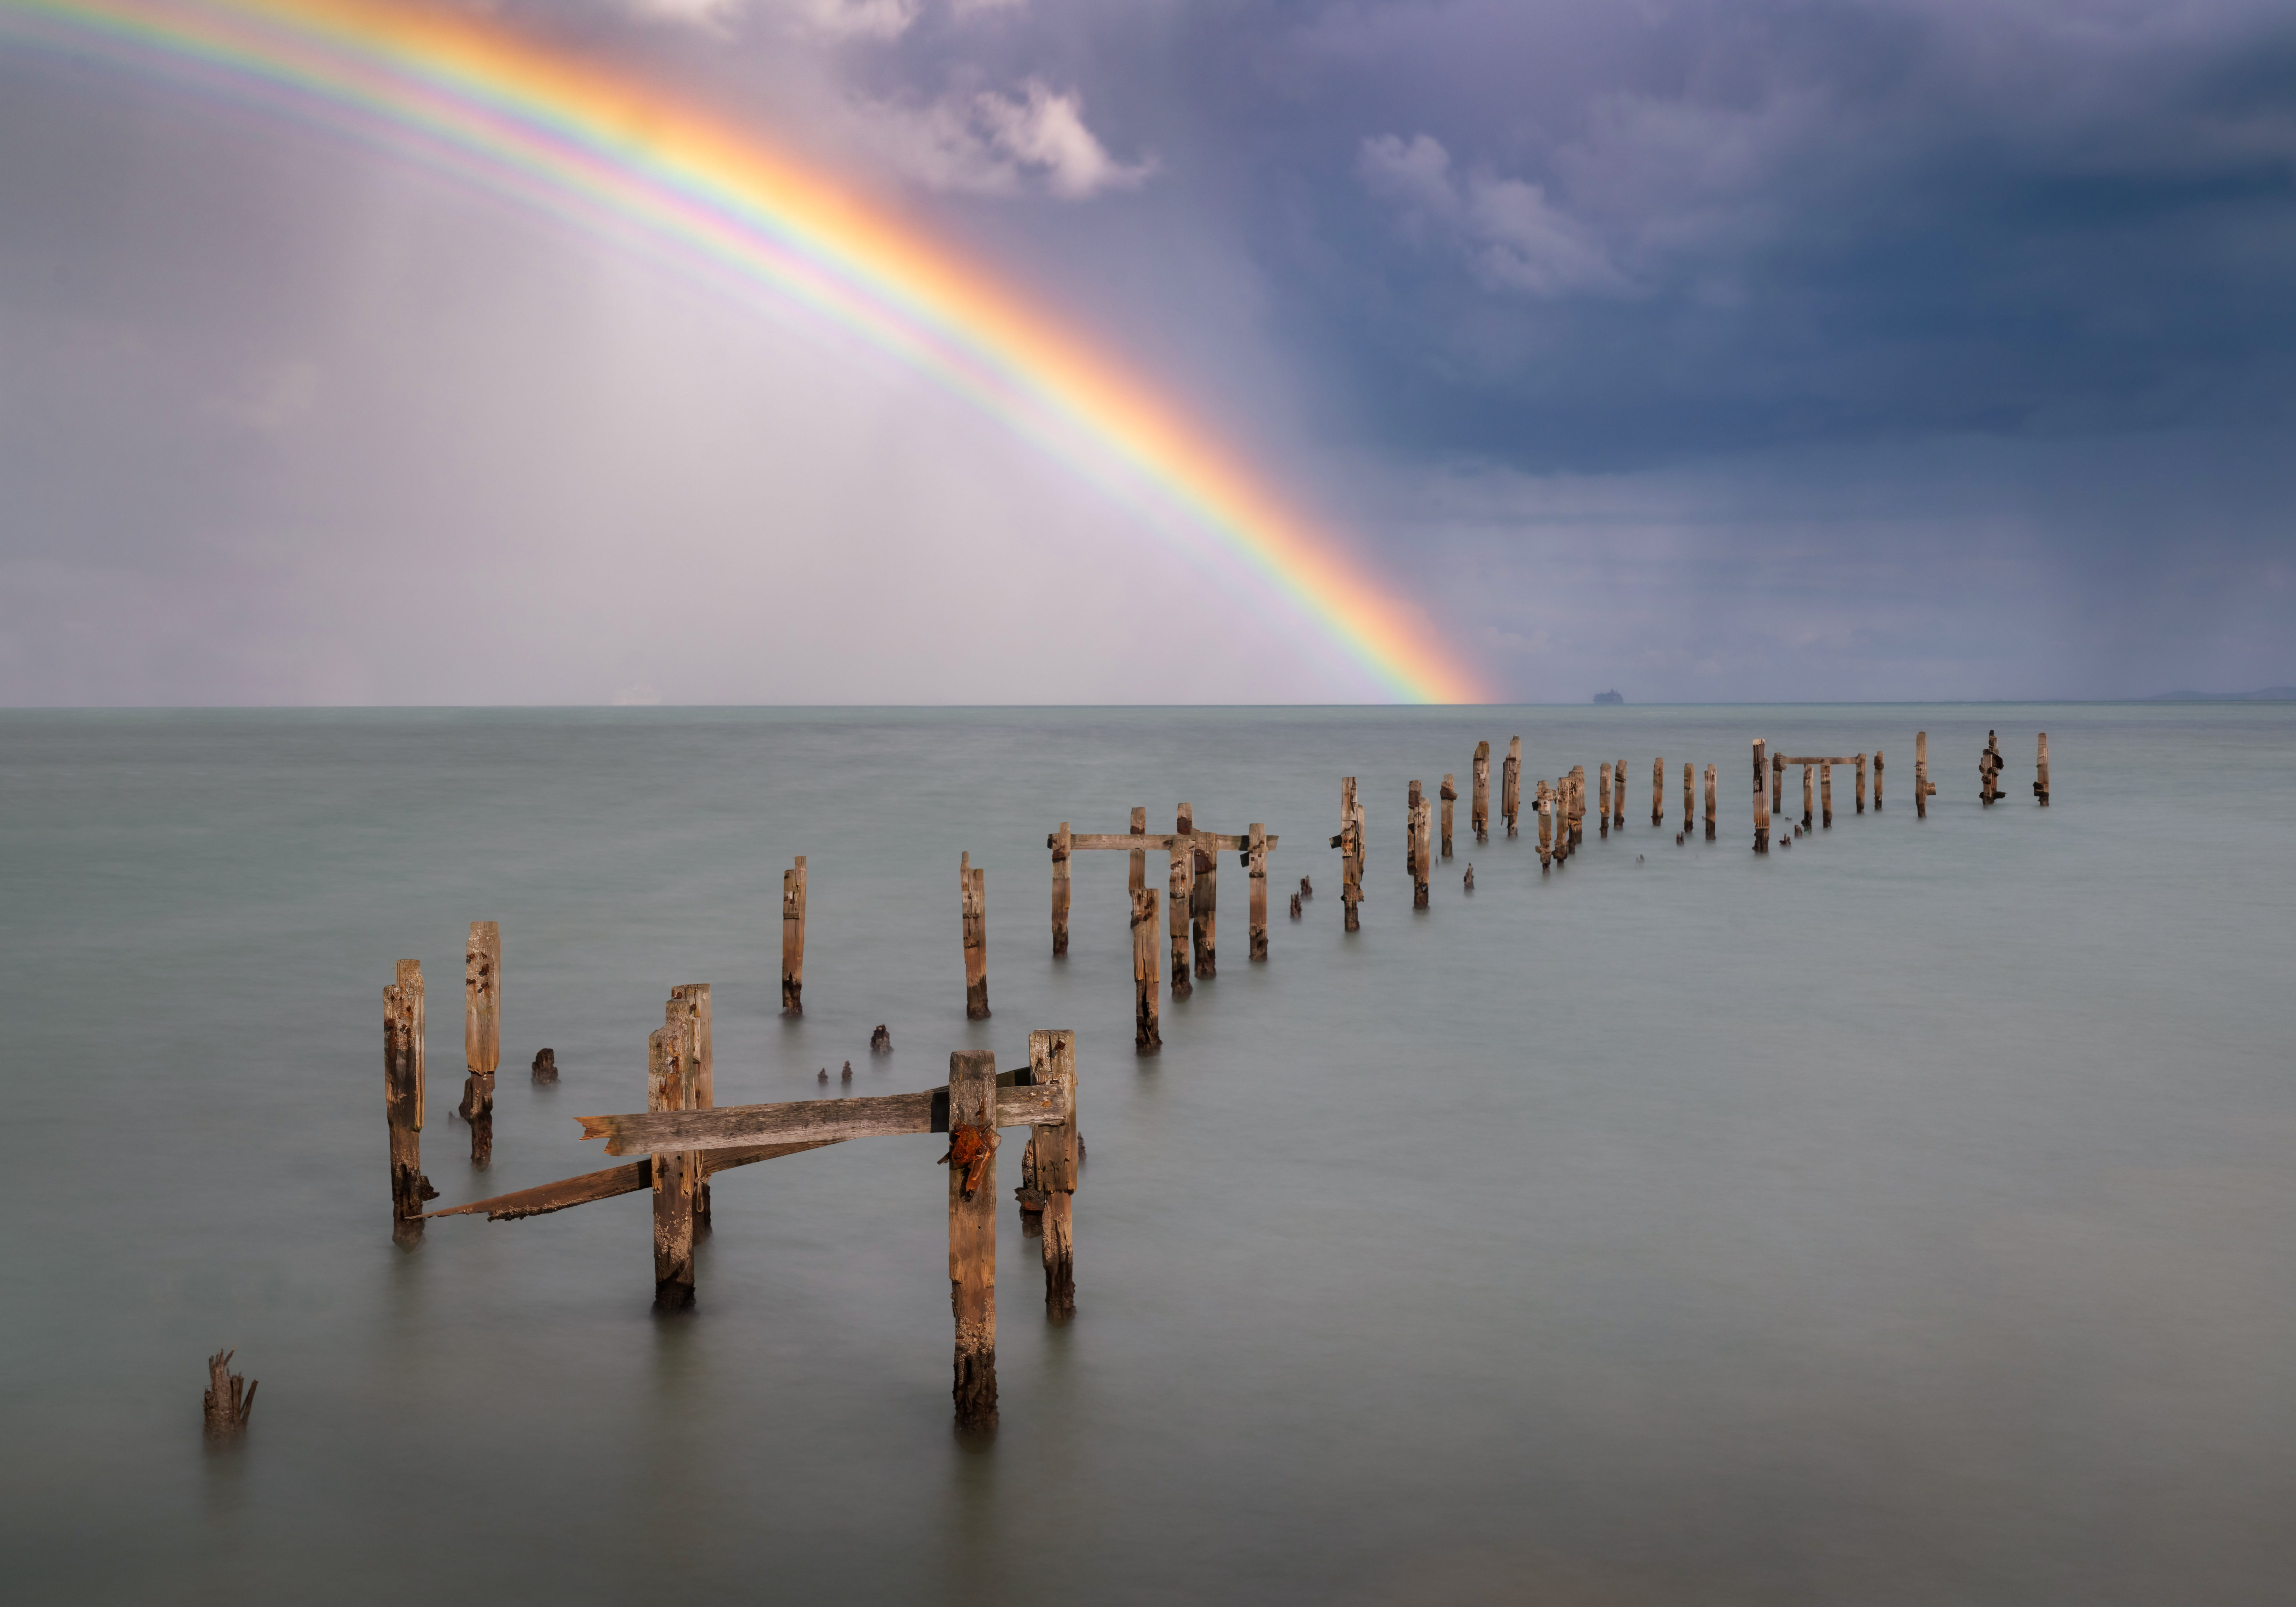 Intense,Rainbow,Over,The,Old,Pier,In,Swanage,Bay